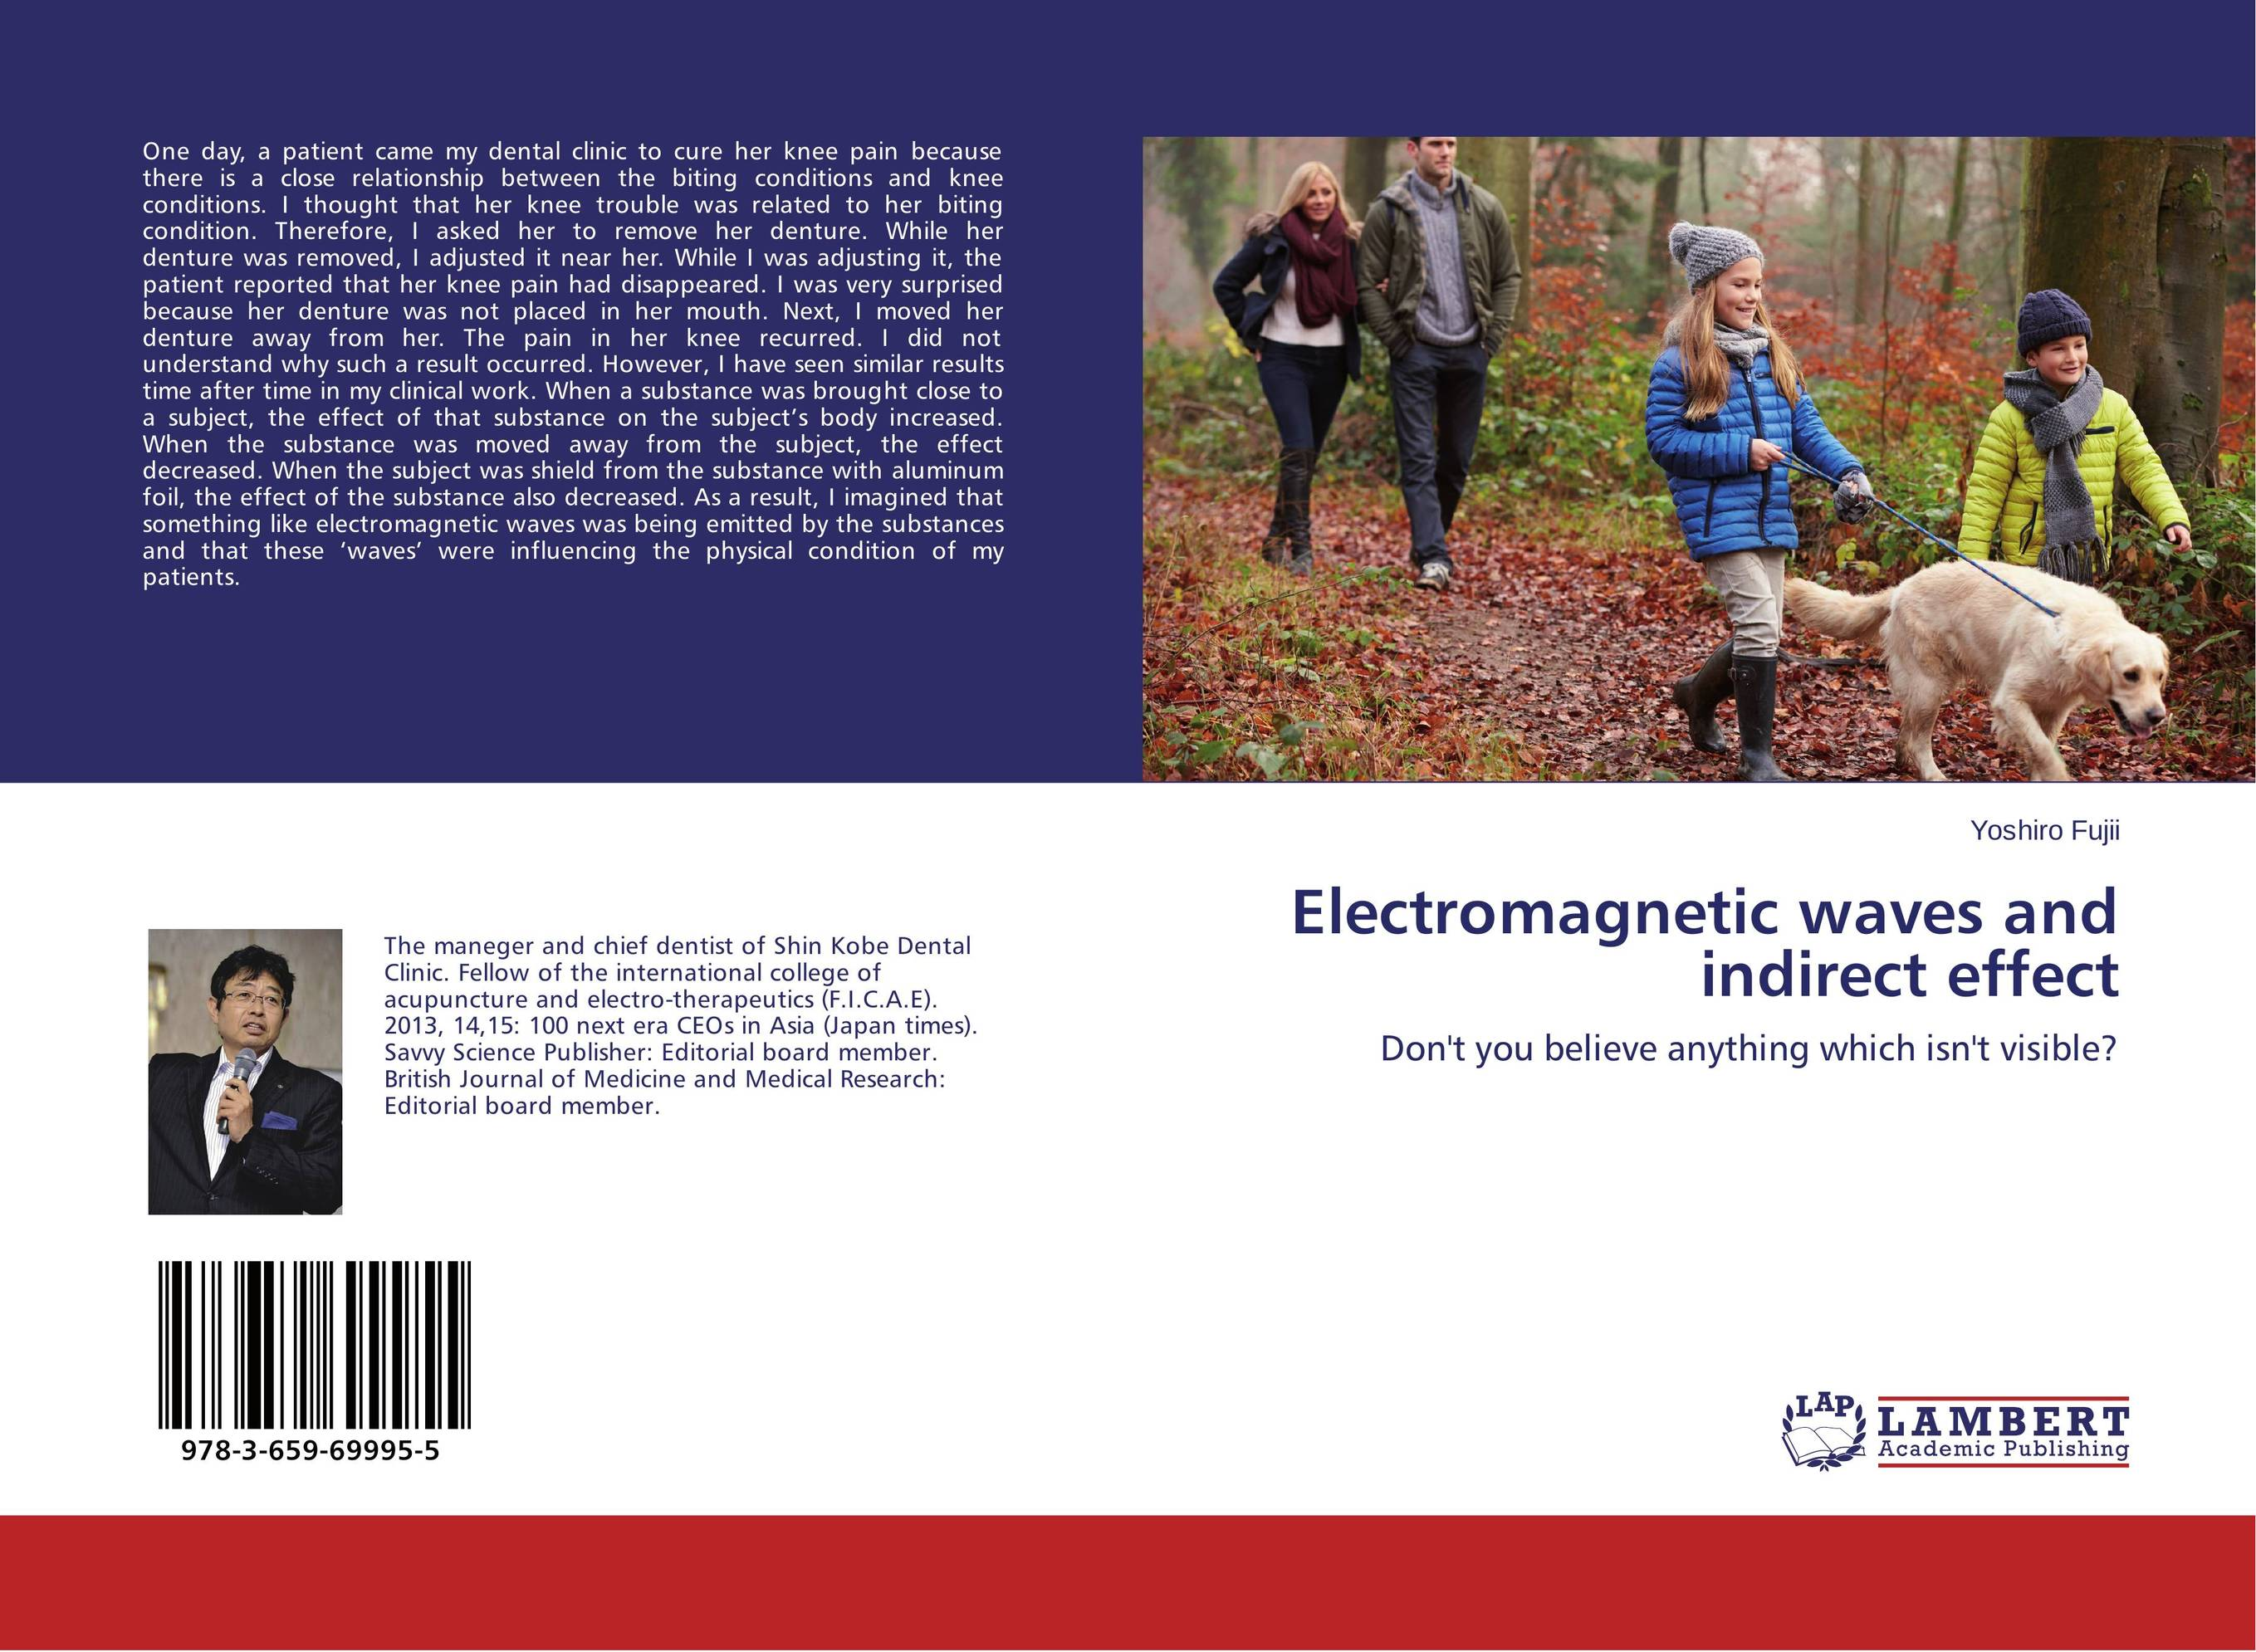 Electromagnetic waves and indirect effect